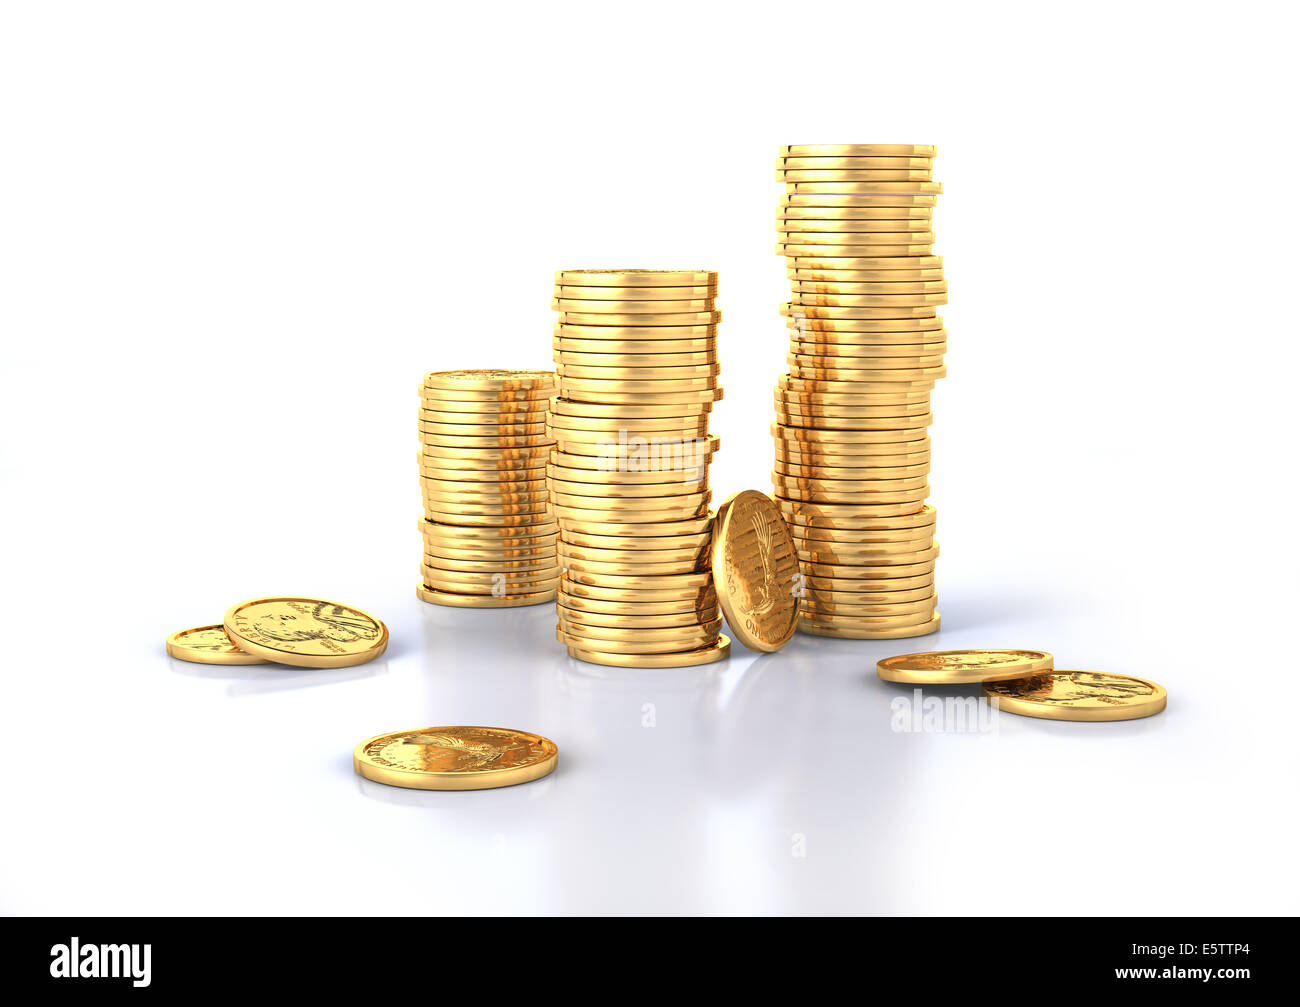 Gold dollar coins stacks and a few lose on a white surface, slightly reflective. White background. - Stock Image